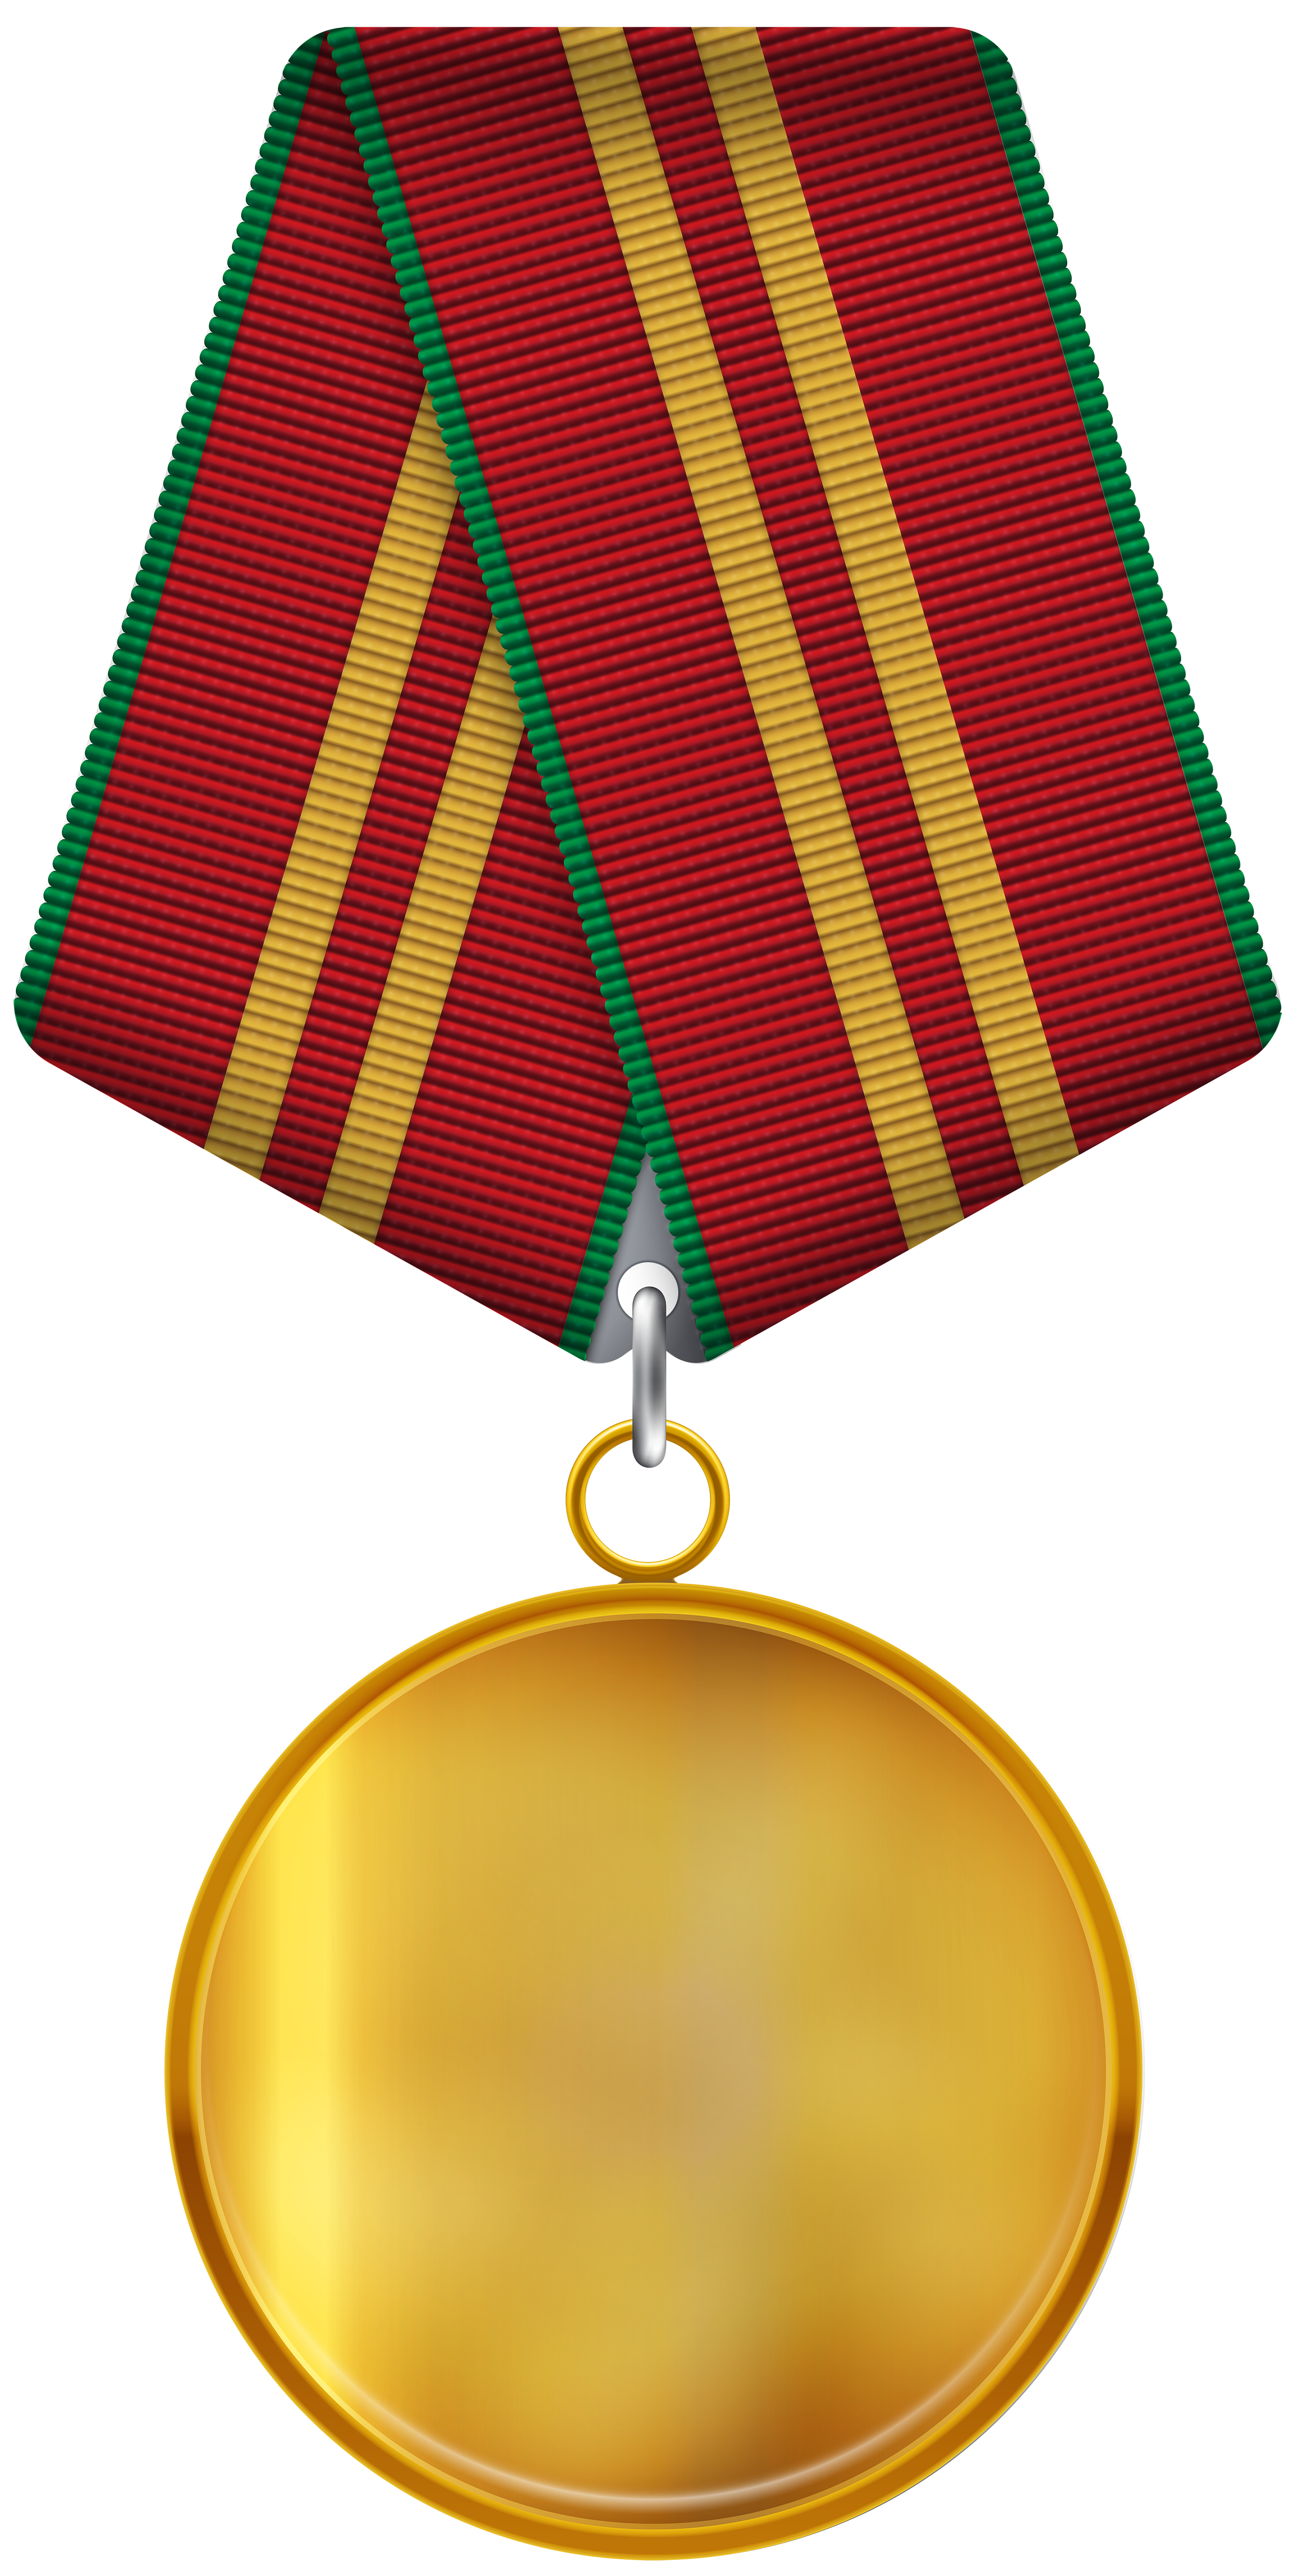 Medal Free PNG Clip Art Image.